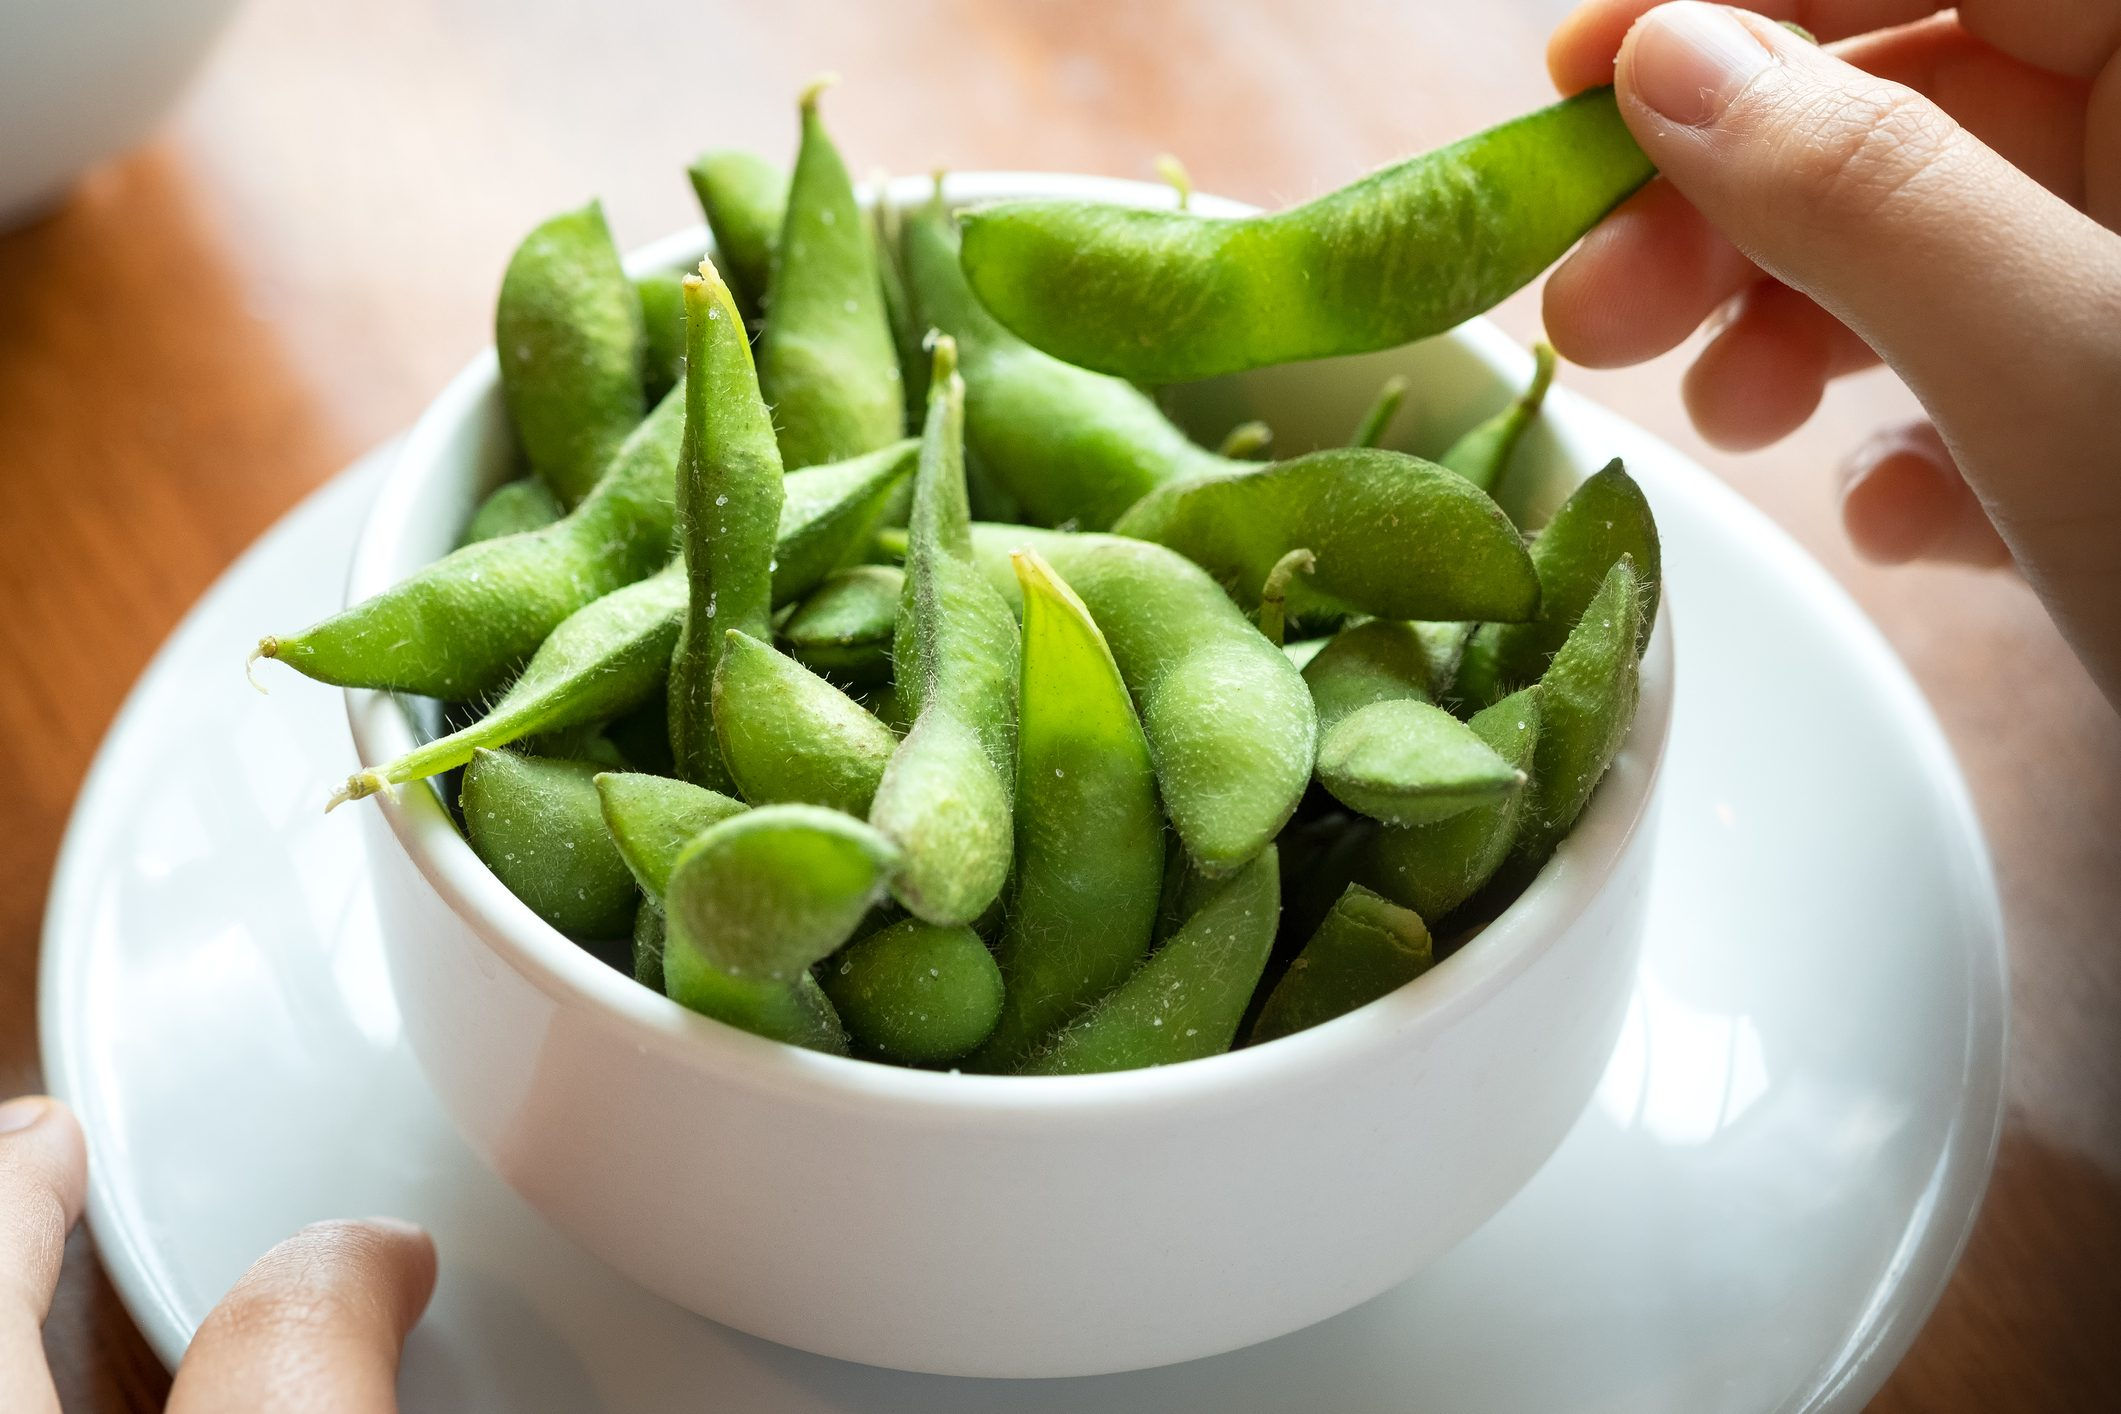 POV, Salted Edamame Beans, Eating Japanese Food by Hand